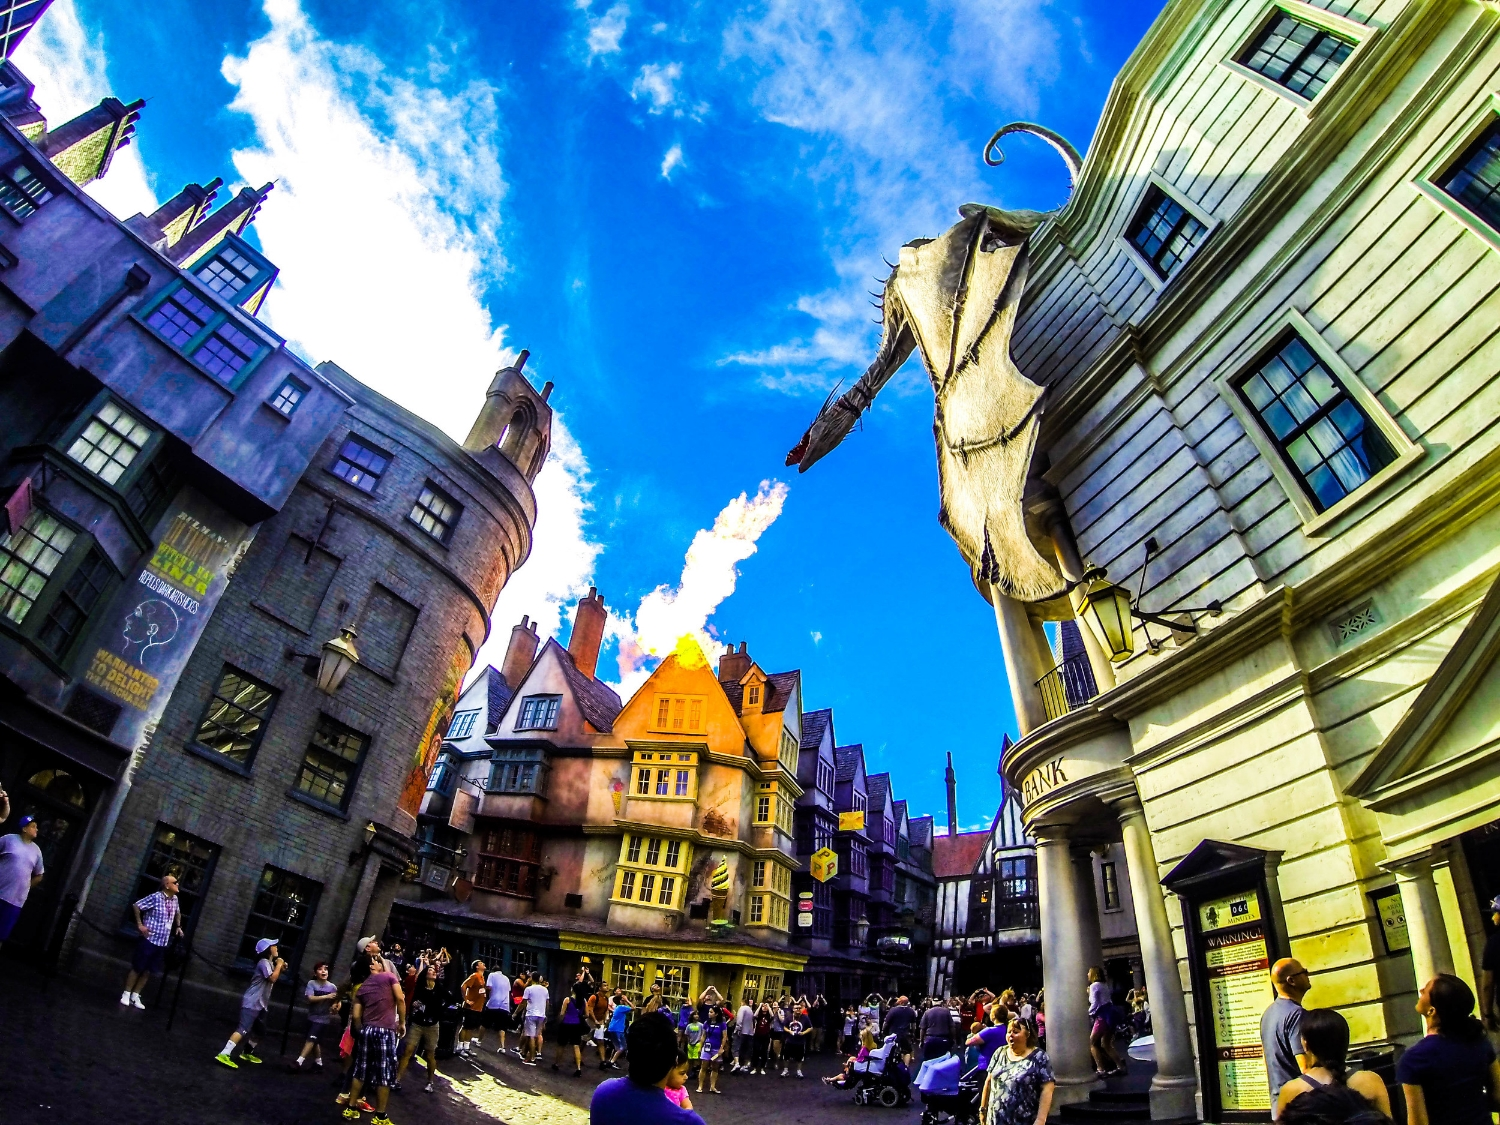 Get tips to take better photos in this interview with theme park photographer Bill Forshey.